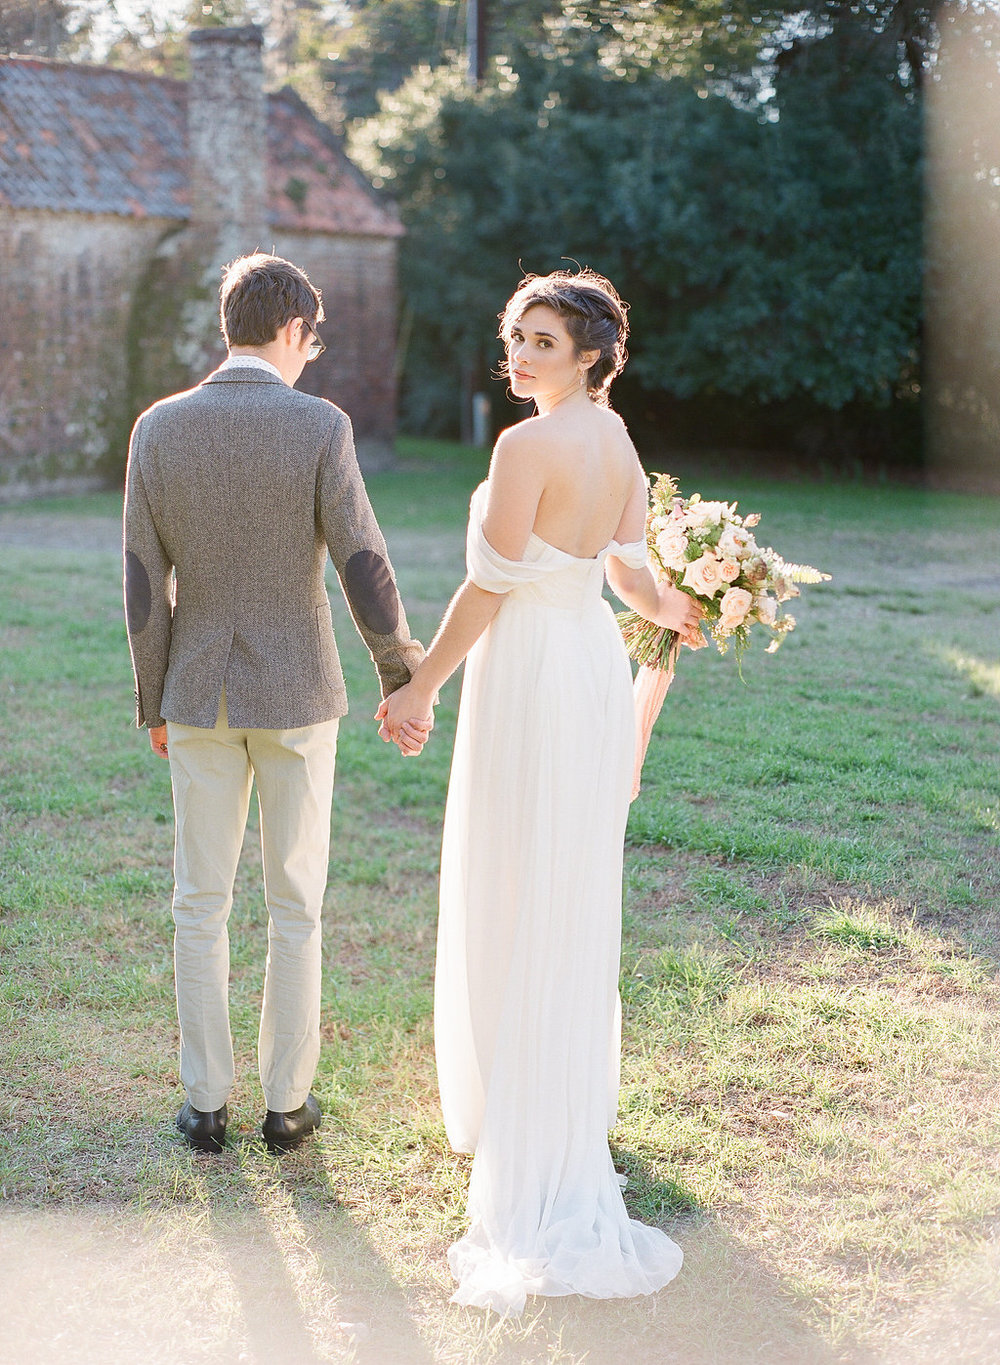 the-happy-bloom-ivory-and-beau-bridal-boutique-trendy-bride-magazine-august-floral-design-savannah-bridal-boutique-lafayette-sarah-seven-boone-hall-plantation-wedding-southern-wedding-charleston-wedding-mt-pleasent-wedding-10.jpg